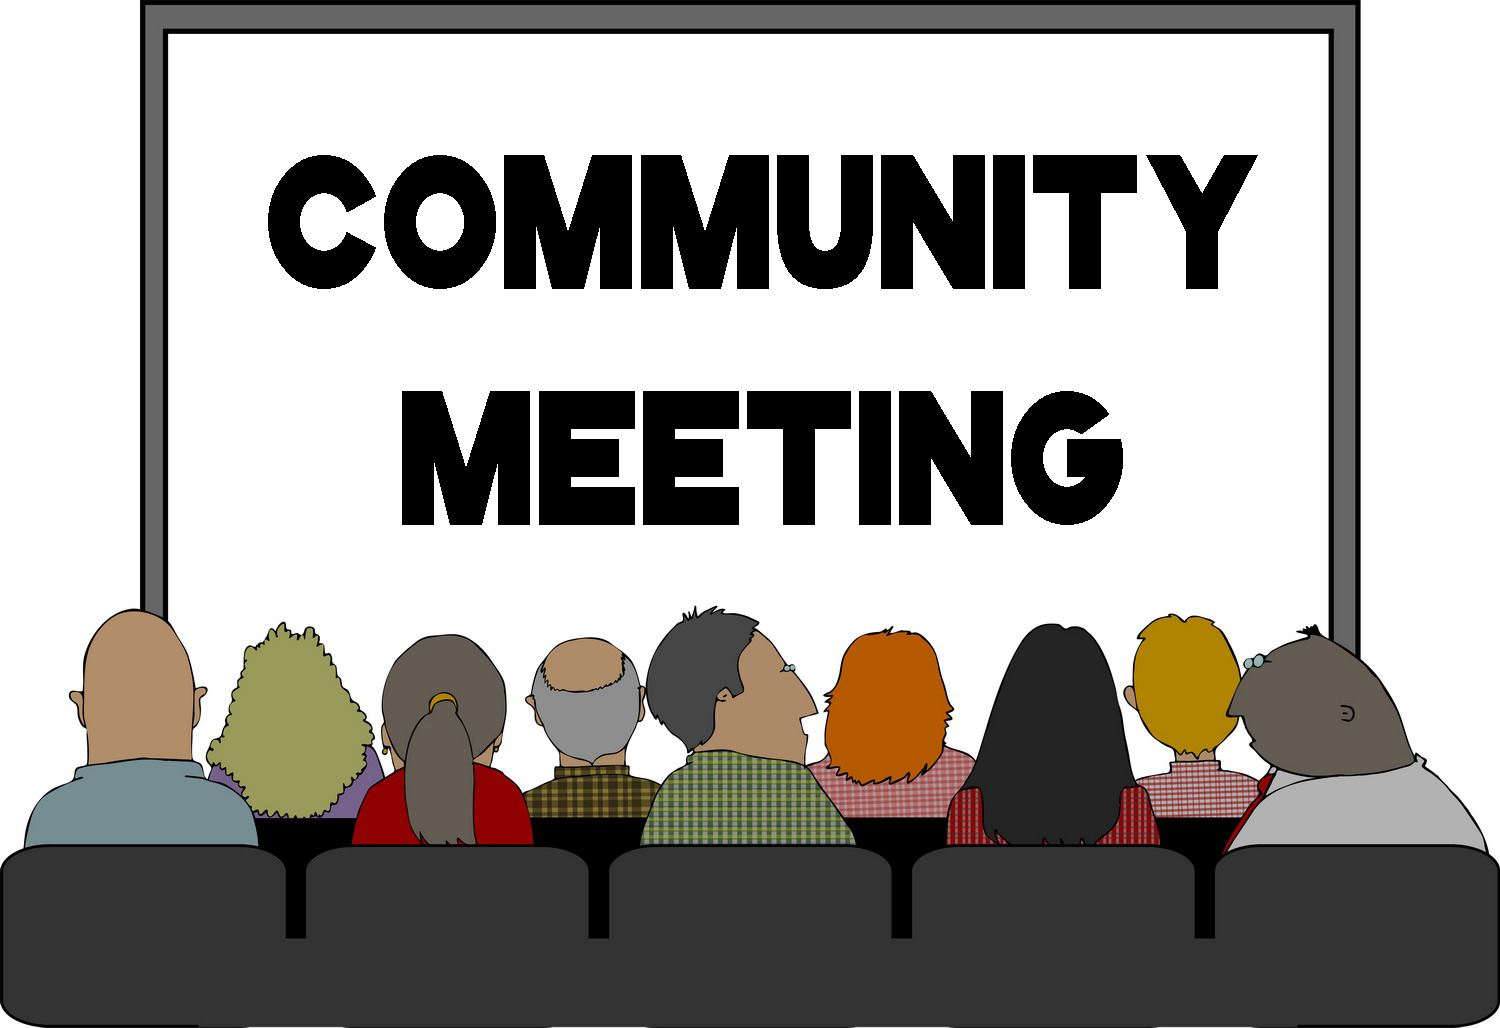 Community Meeting Cliparts.